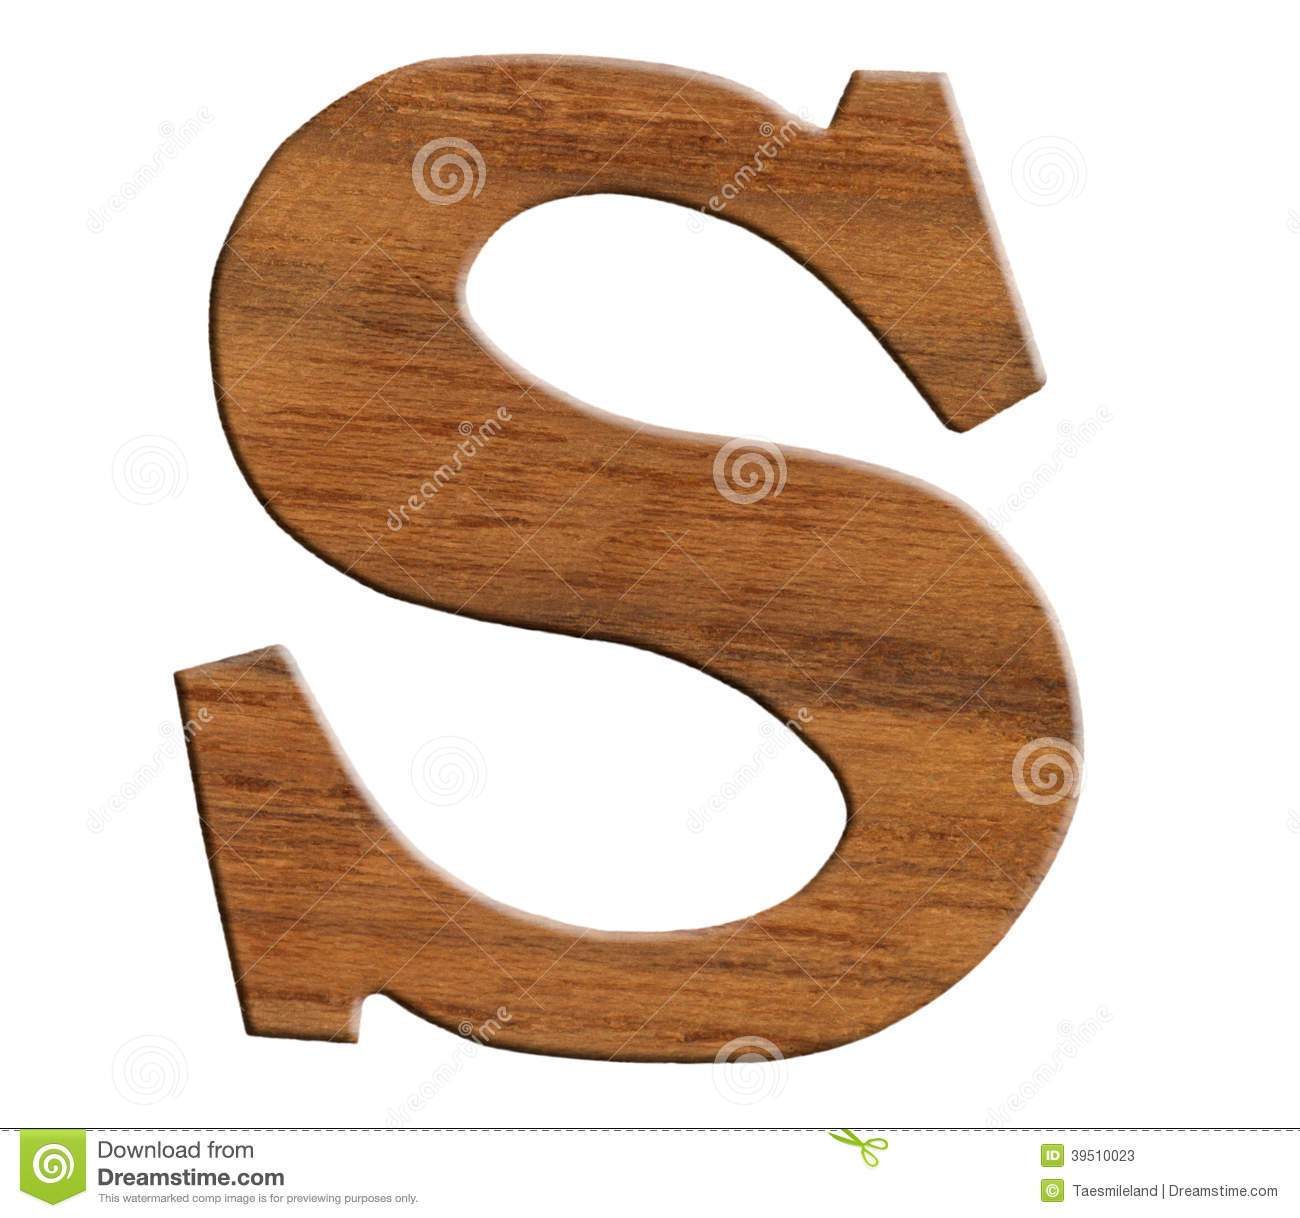 Alphabet made from wood,